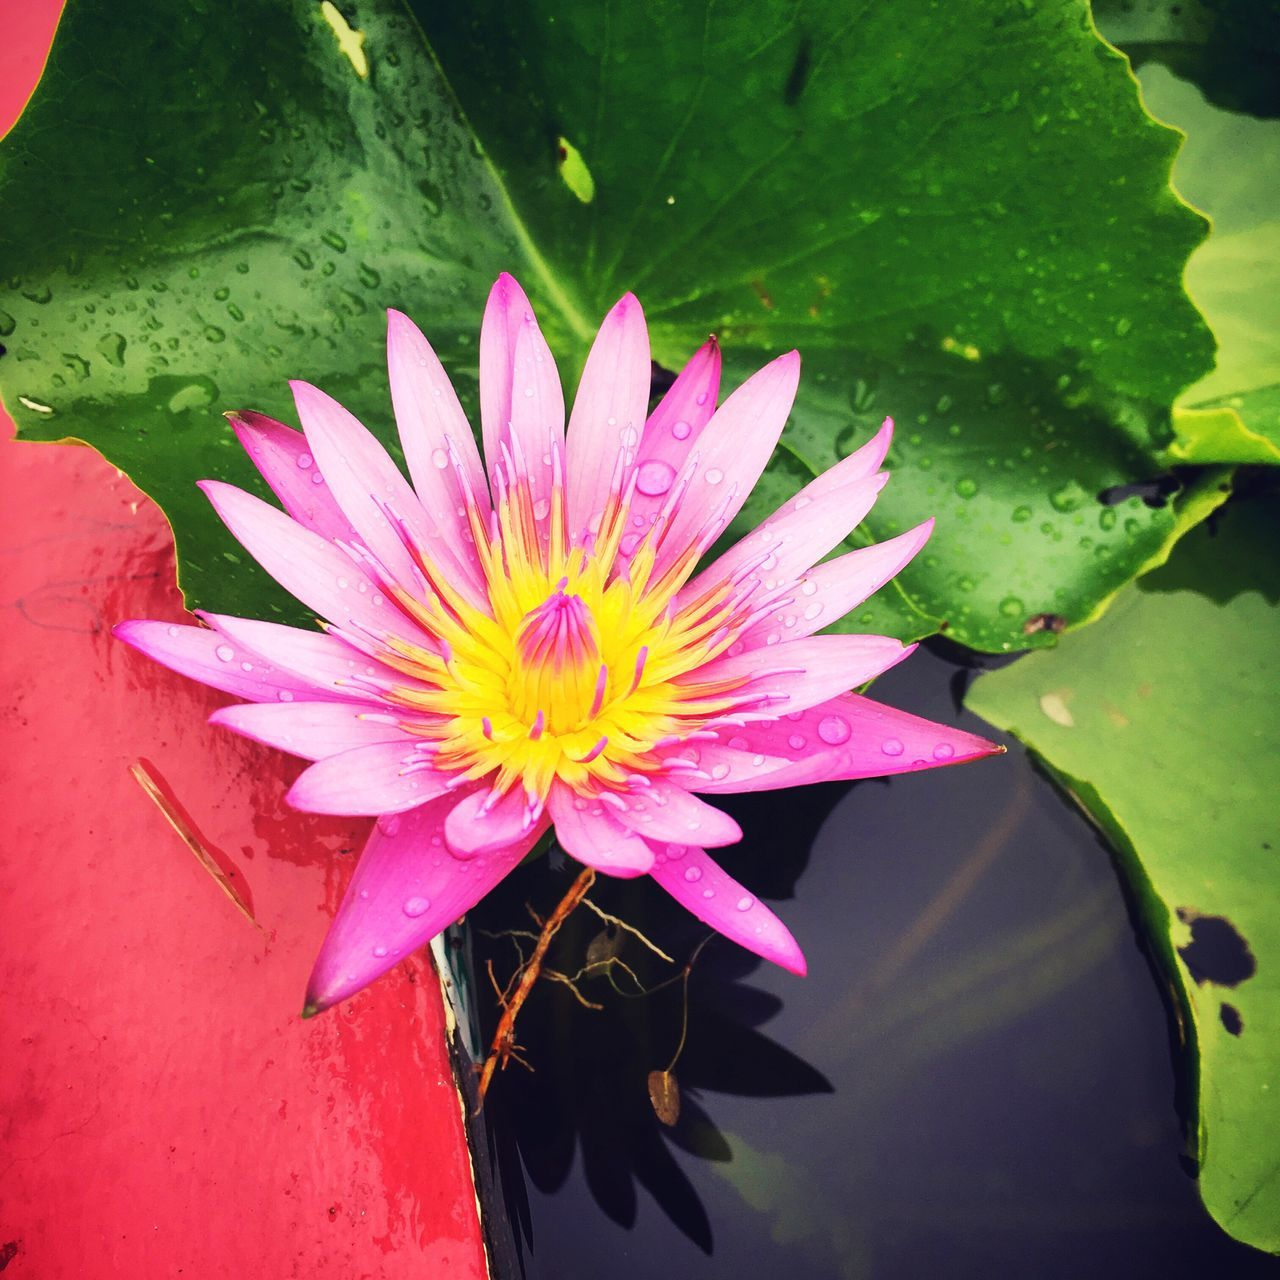 flower, beauty in nature, petal, nature, freshness, flower head, fragility, growth, plant, close-up, pink color, leaf, high angle view, outdoors, no people, day, blooming, lotus water lily, water